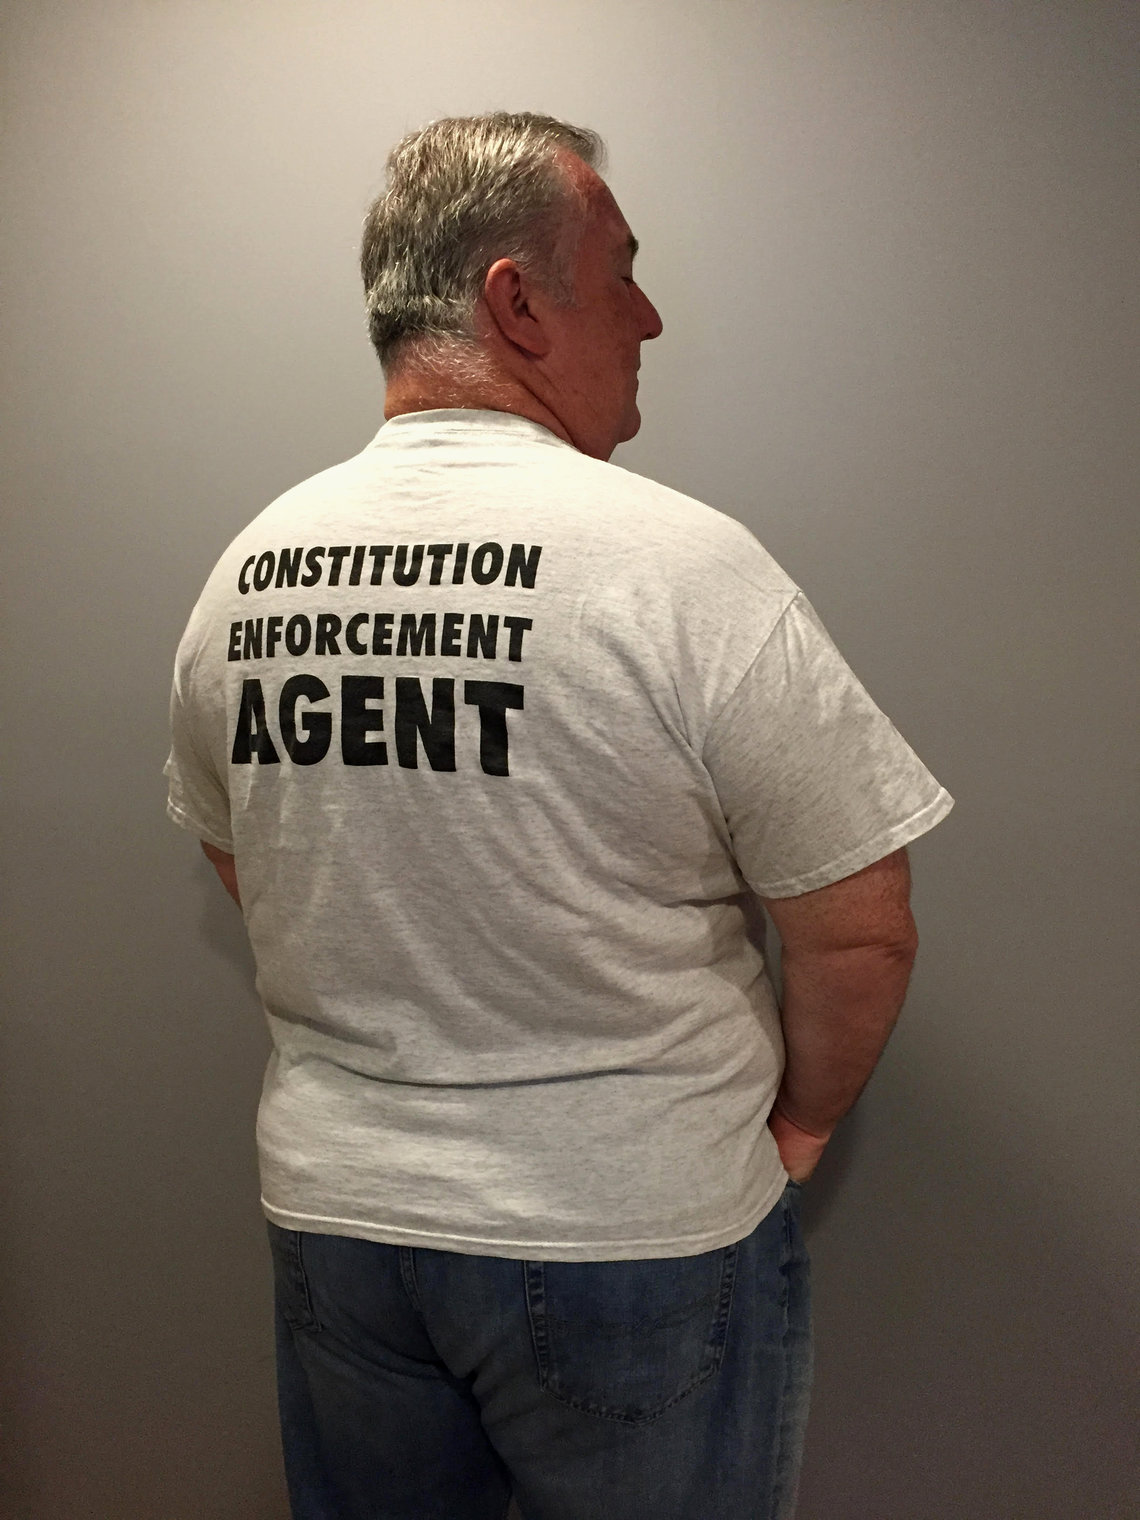 Lawyer Jay Ruane, above, wears this shirt to his local music festival, where he answers questions about the law and promotes his firm.